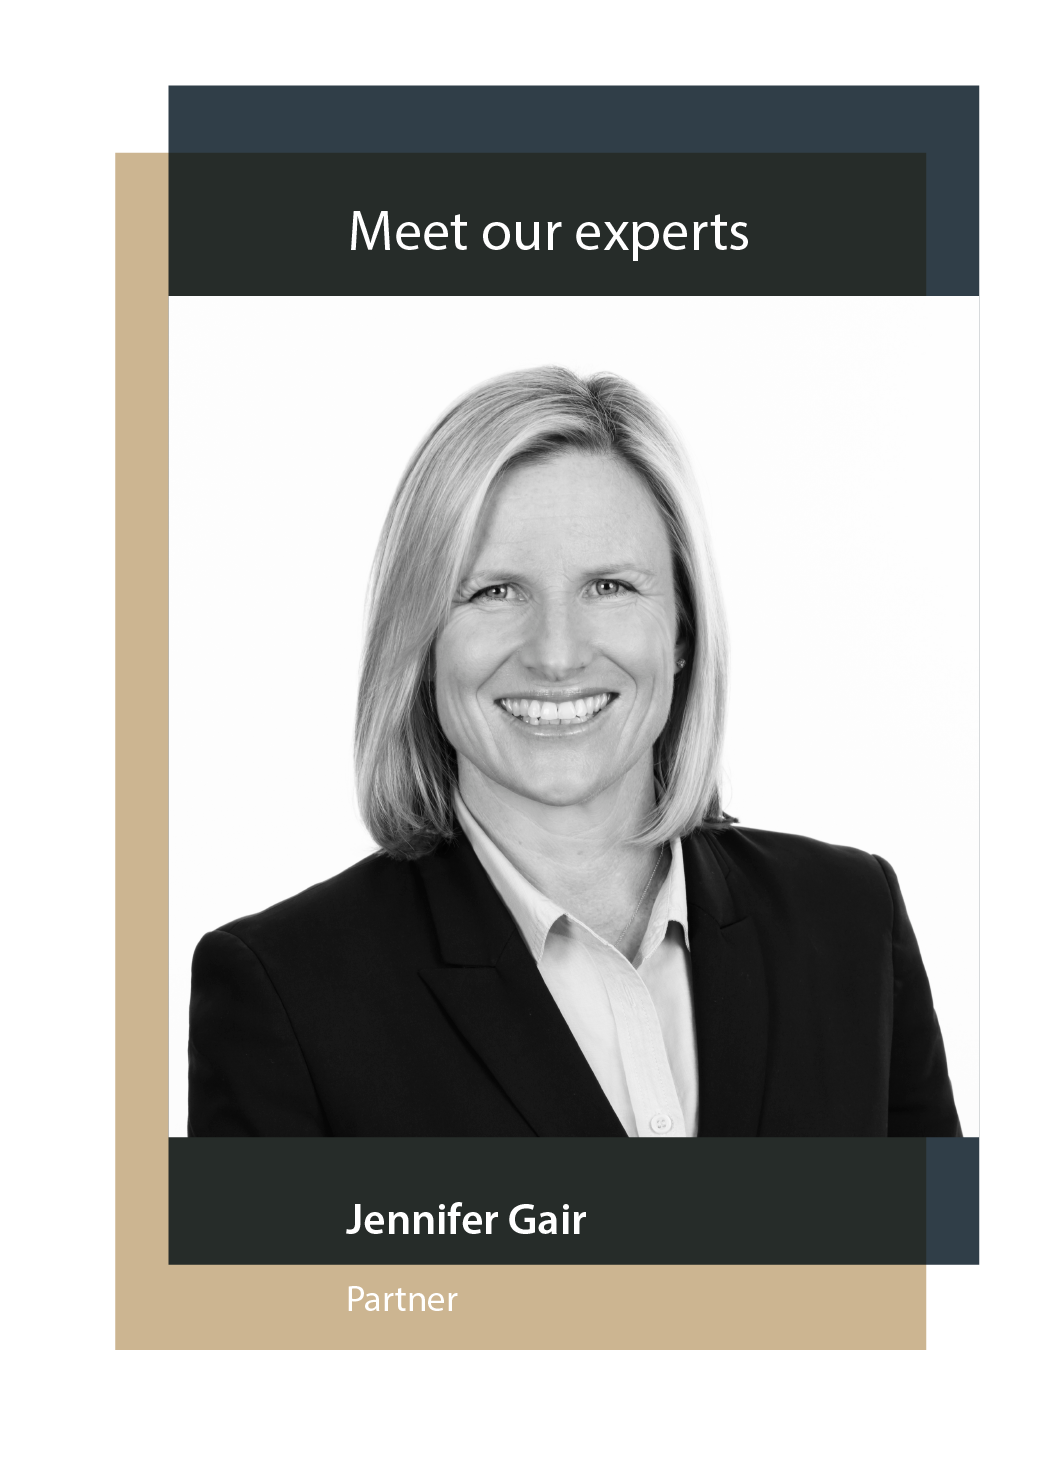 meet our experts-01